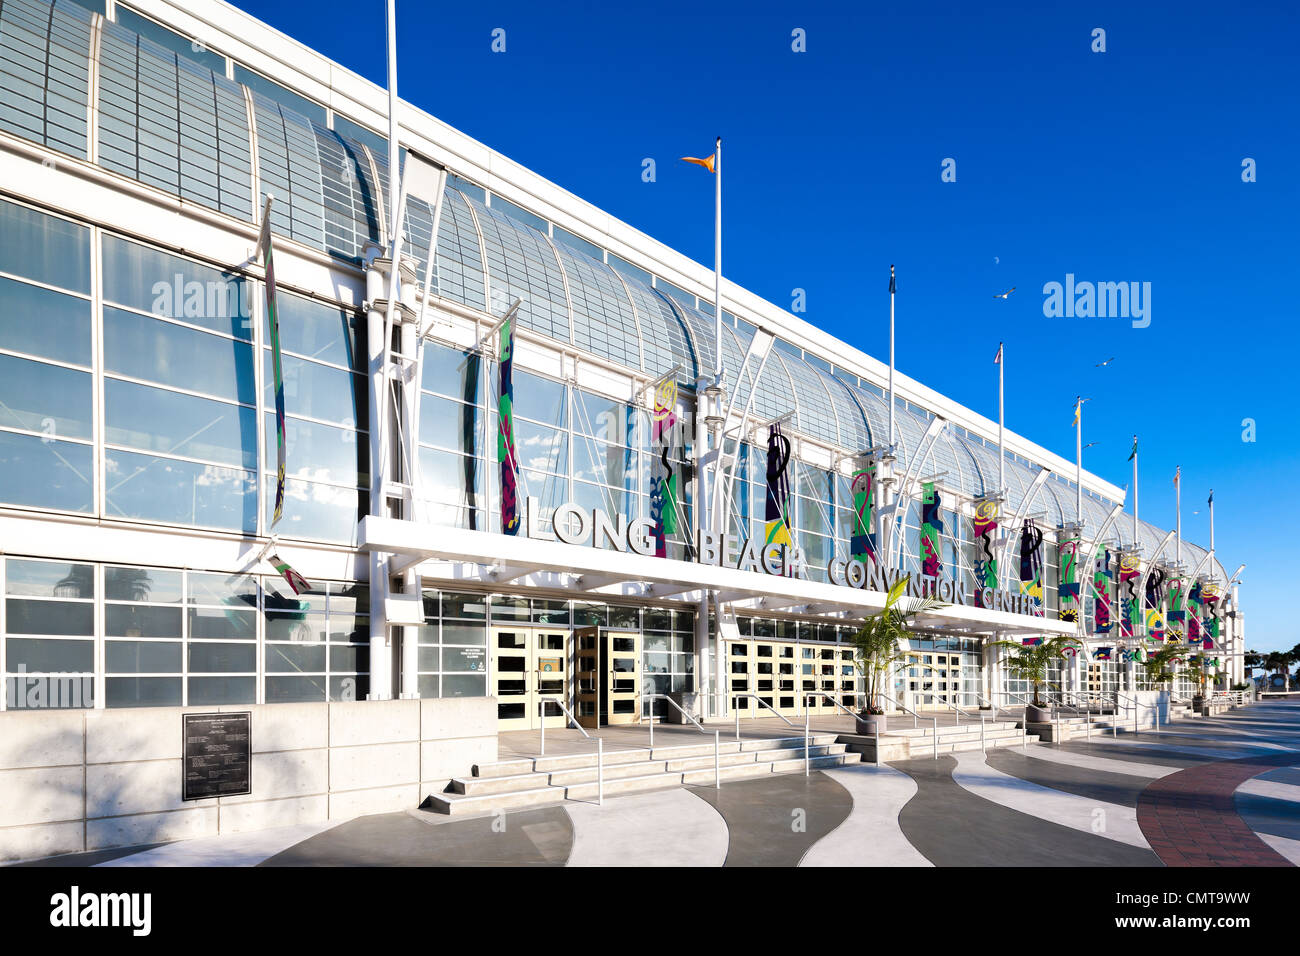 25 long beach convention center terrace theater decor23 for Terrace theater long beach